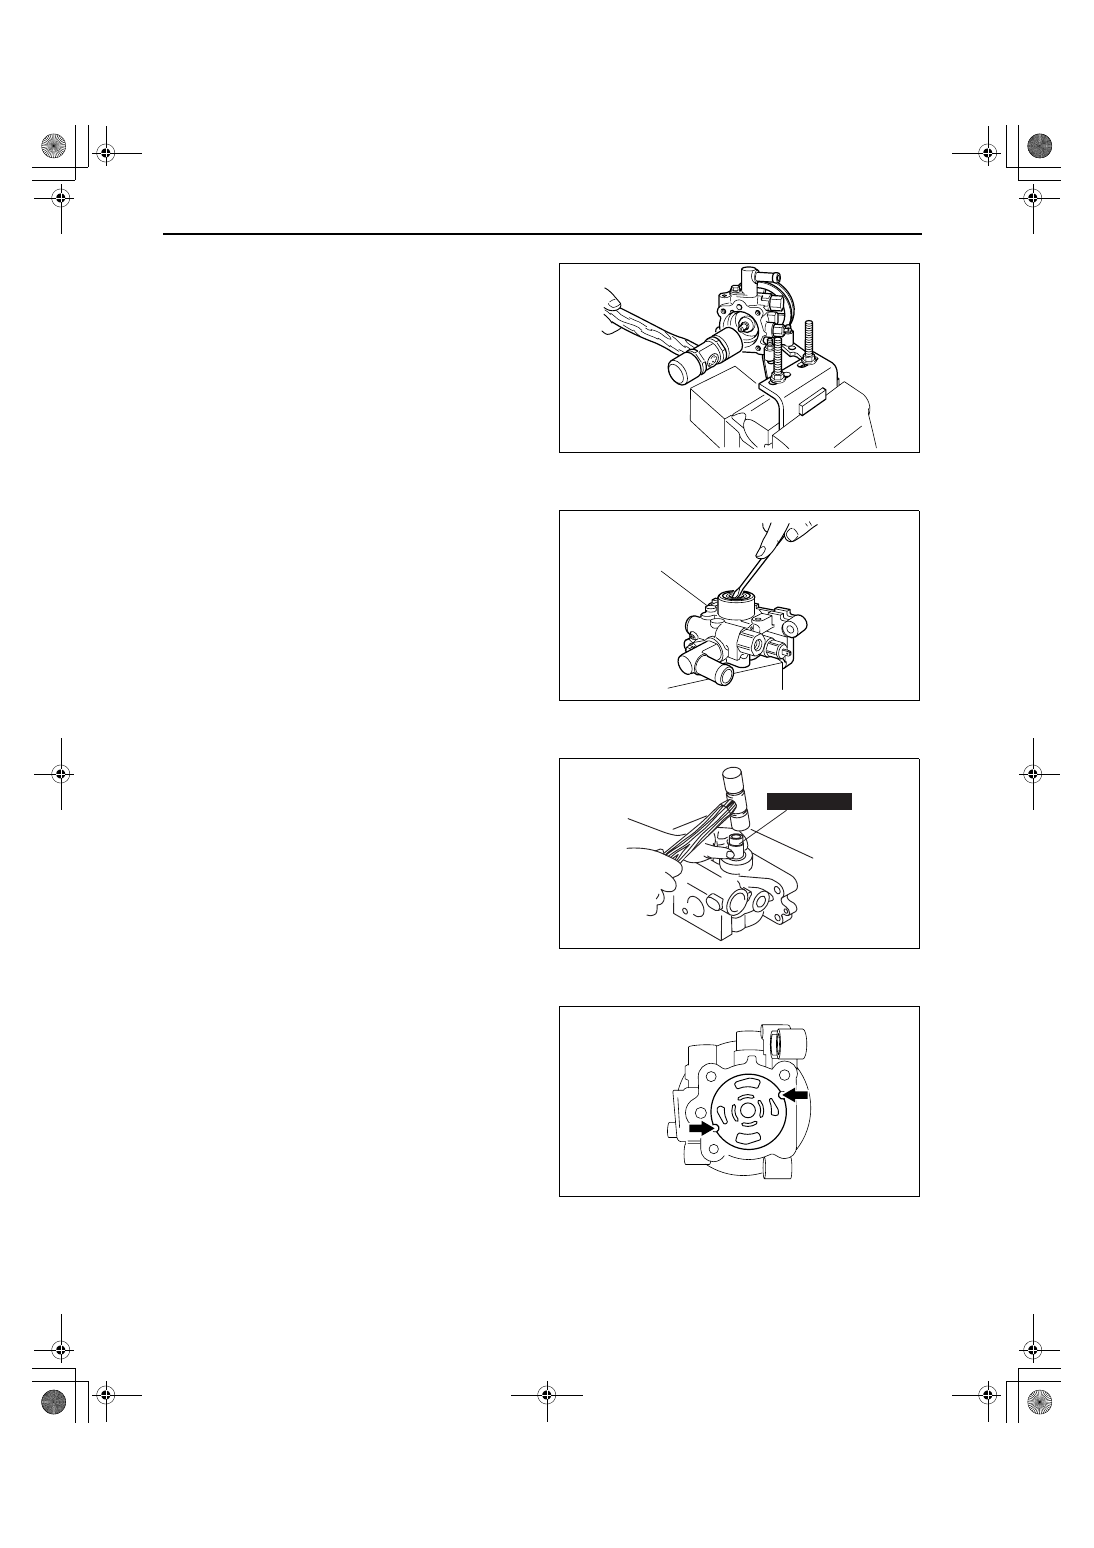 Mazda 3 Service Manual: Electric Power Steering Oil Pump Component DisassemblyAssembly